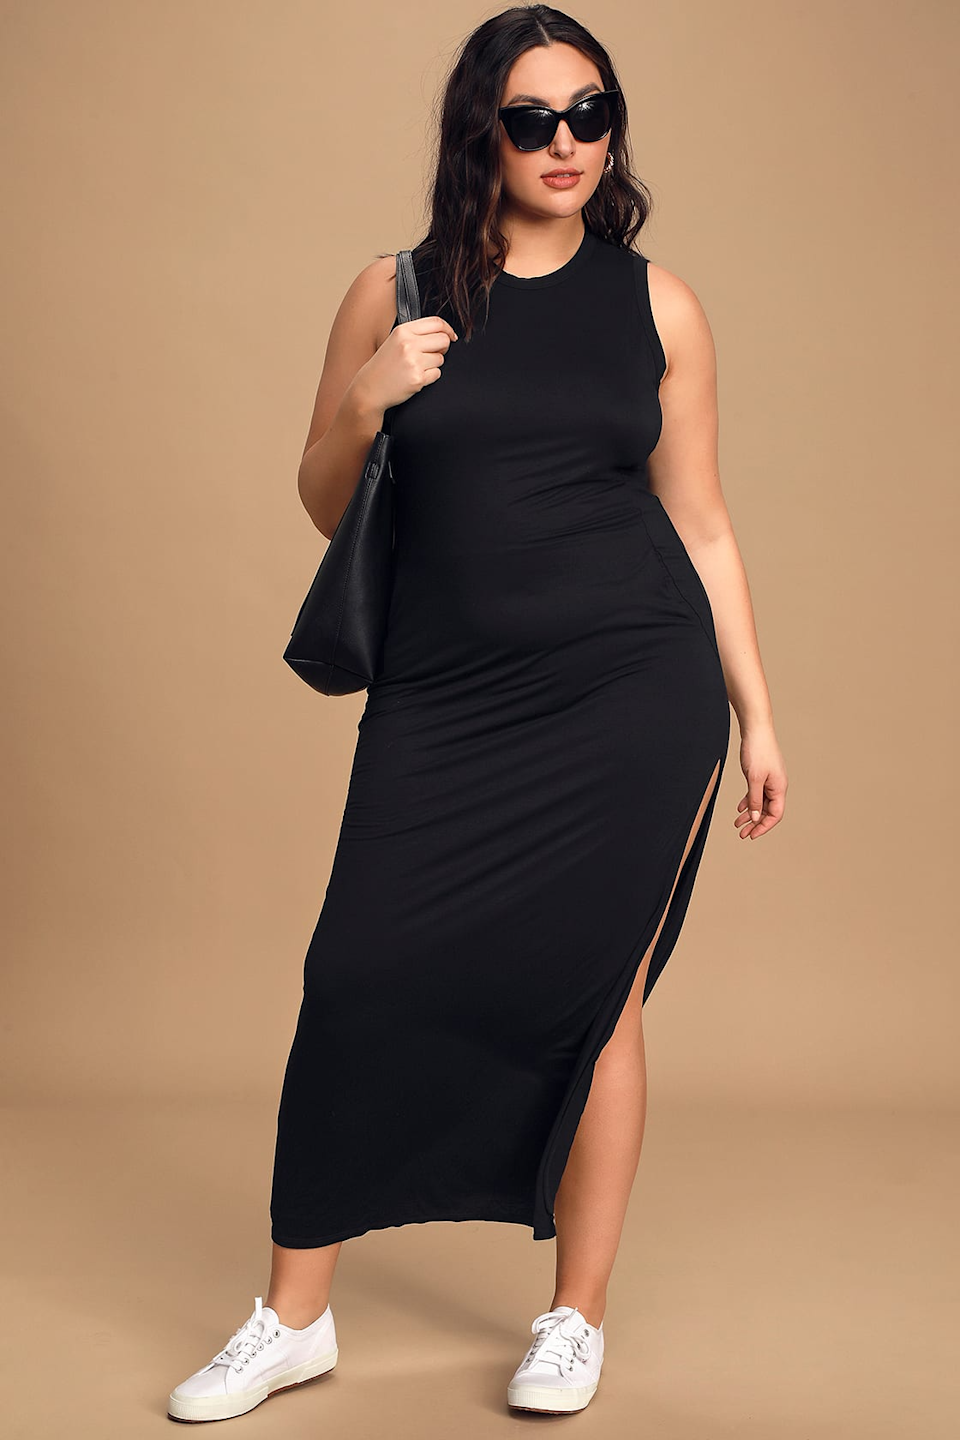 """<h2>Lulus Shield & Sword Black Sleeveless Maxi Dress With Pockets </h2><br><strong><h3>Best Flexible Plus-Size Dress</h3></strong><br><strong>Sizes Available: 1X-3X </strong><br>This frock nets both the more elevated and more casual look depending on how you style it. The thick, stretchy fabric provides comfort and coverage while the side slit adds a bit of flirty allure. Pair it with sneakers or a solid pump, depending on the vibe.<br><br>""""I'm so in love with the dress!!! I've bought so many things from here & every time you amaze me with how well the fit is & how good quality it is. The material doesn't feel cheap at all!! Well-made! So happy you guys are starting to do extended sizes!!""""<em> – Amoreena C., Size 1X</em><br><br><em>Shop <strong><a href=""""https://www.lulus.com/products/shield-and-sword-black-sleeveless-maxi-dress-with-pockets/222674.html"""" rel=""""nofollow noopener"""" target=""""_blank"""" data-ylk=""""slk:Lulus"""" class=""""link rapid-noclick-resp"""">Lulus</a></strong></em><br><br><strong>Lulus</strong> Shield and Sword Black Sleeveless Maxi Dress With Pockets, $, available at <a href=""""https://go.skimresources.com/?id=30283X879131&url=https%3A%2F%2Fwww.lulus.com%2Fproducts%2Fshield-and-sword-black-sleeveless-maxi-dress-with-pockets%2F222674.html"""" rel=""""nofollow noopener"""" target=""""_blank"""" data-ylk=""""slk:Lulus"""" class=""""link rapid-noclick-resp"""">Lulus</a>"""